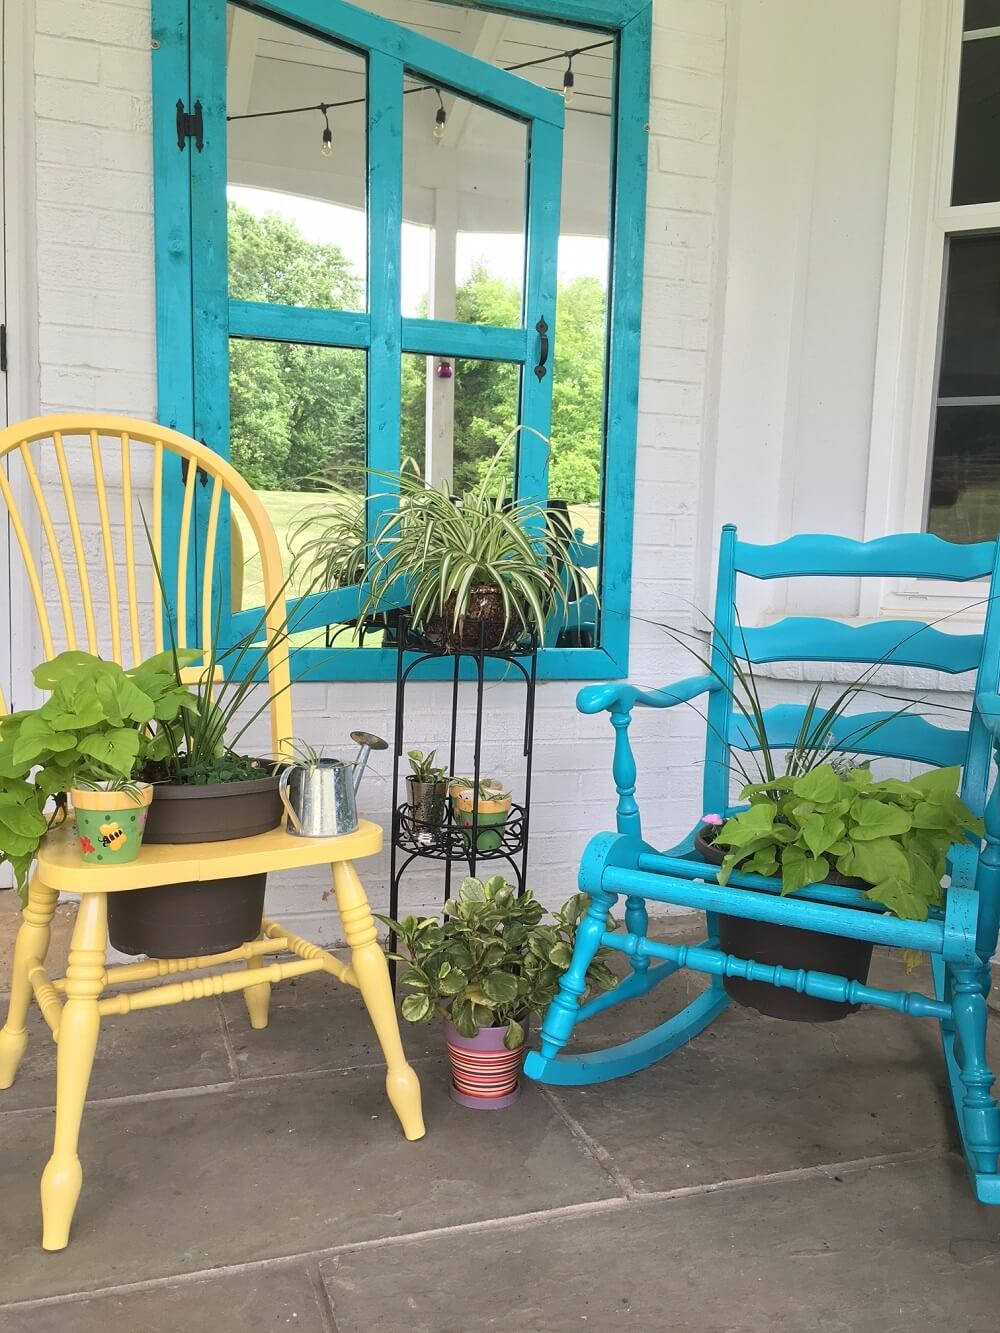 Upcycled garden containers, like these reused chairs, cut waste and cultivate plants.